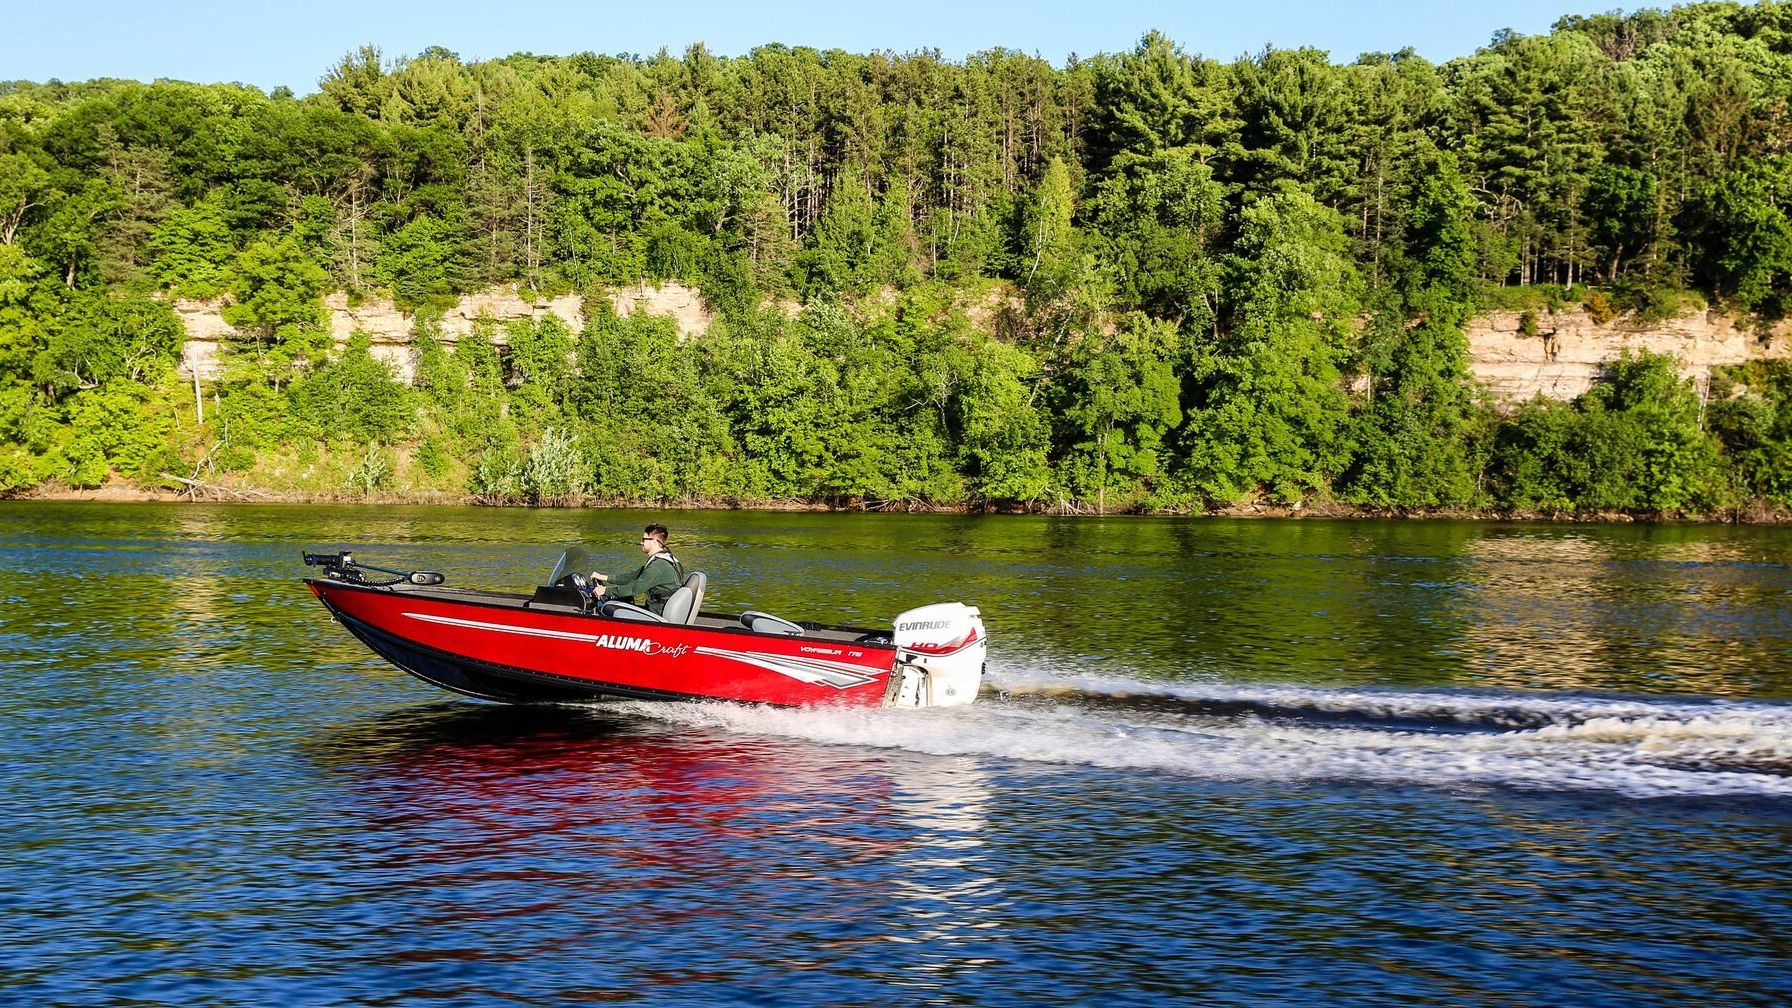 Man driving his Alumacraft boat with an Evinrude motor in a lake